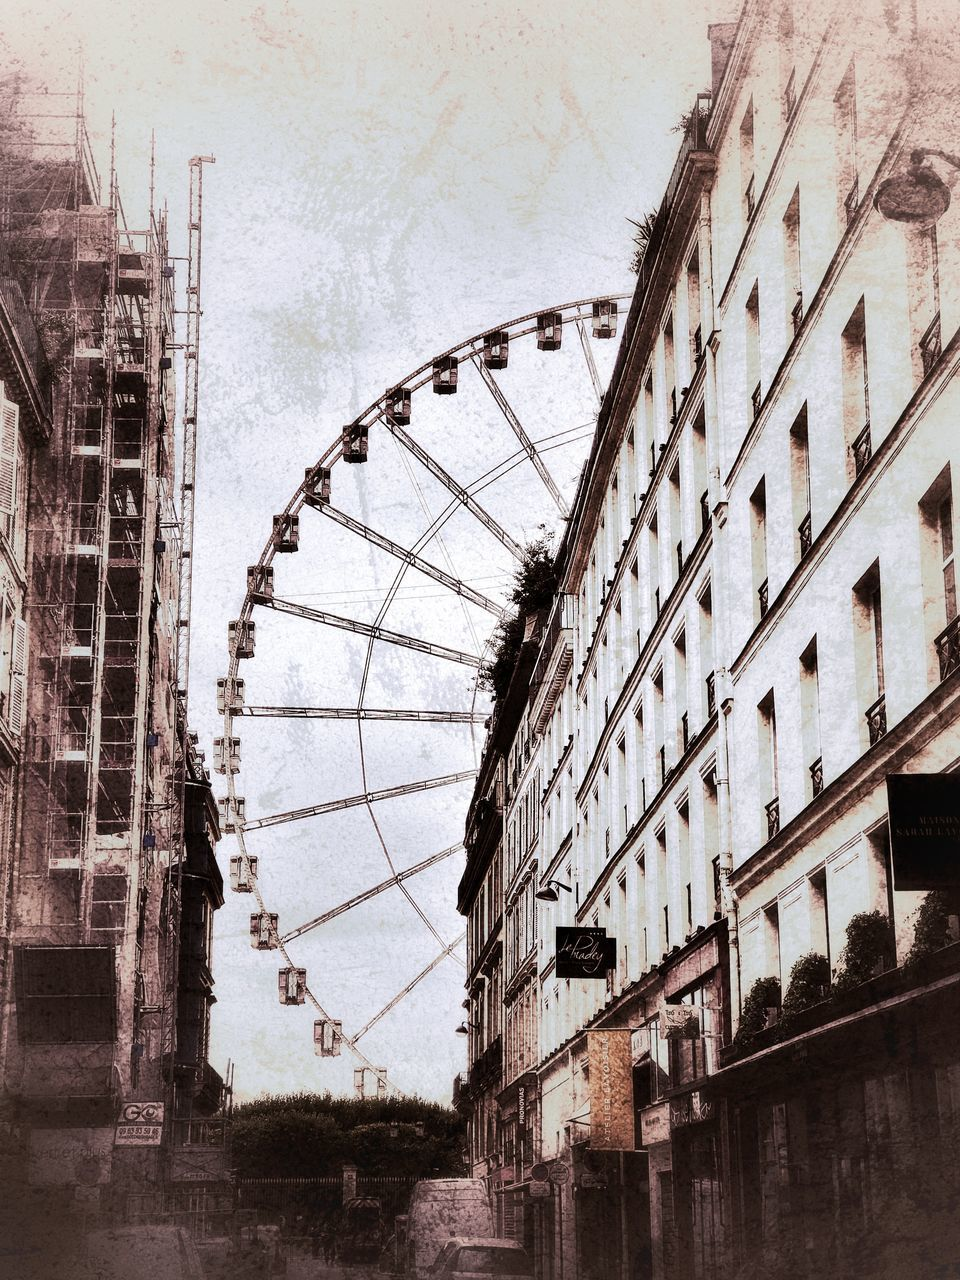 LOW ANGLE VIEW OF FERRIS WHEEL AGAINST BUILDING IN CITY